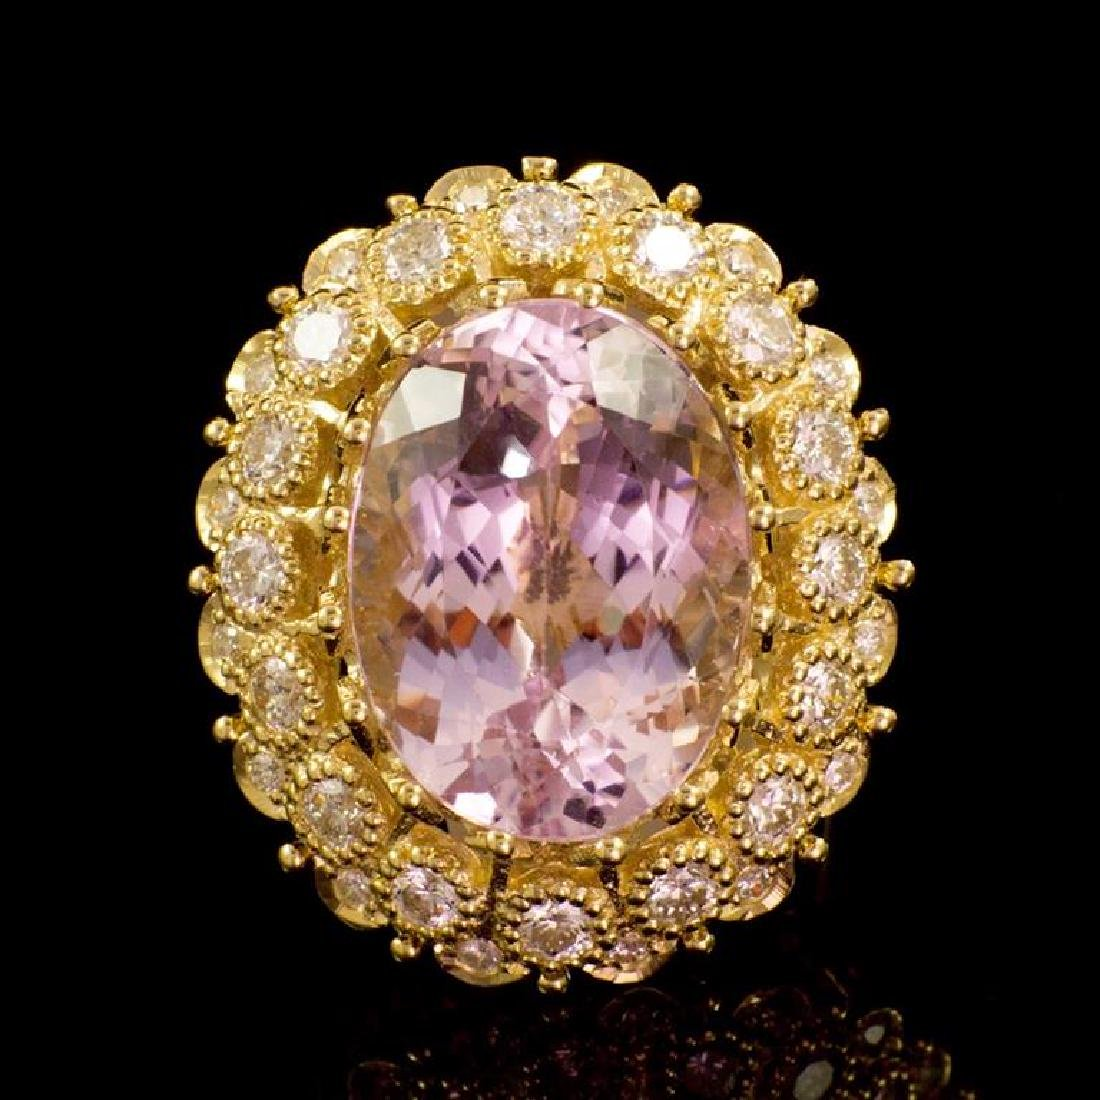 14K Gold 22.06ct Kunzite 2.47ct Diamond Ring